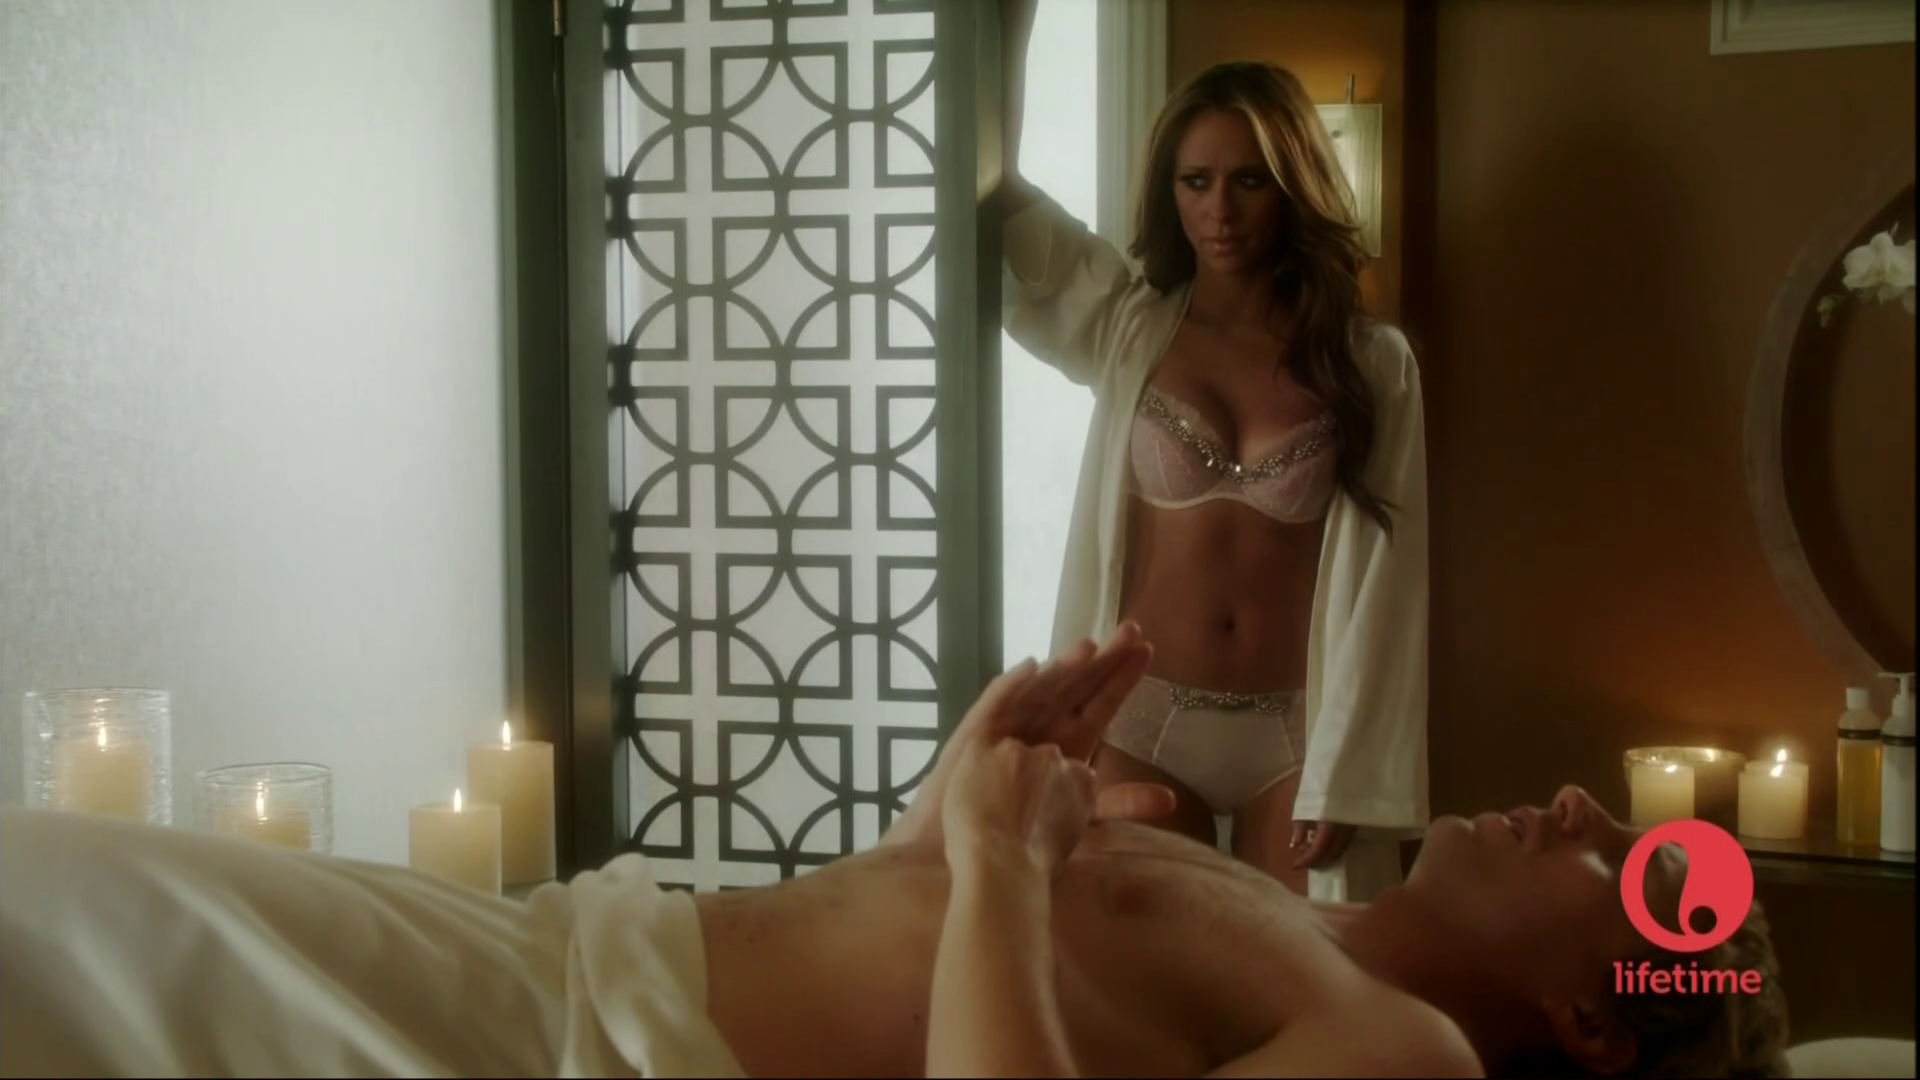 Bra Scenes on The Client lista [20 May 2012]